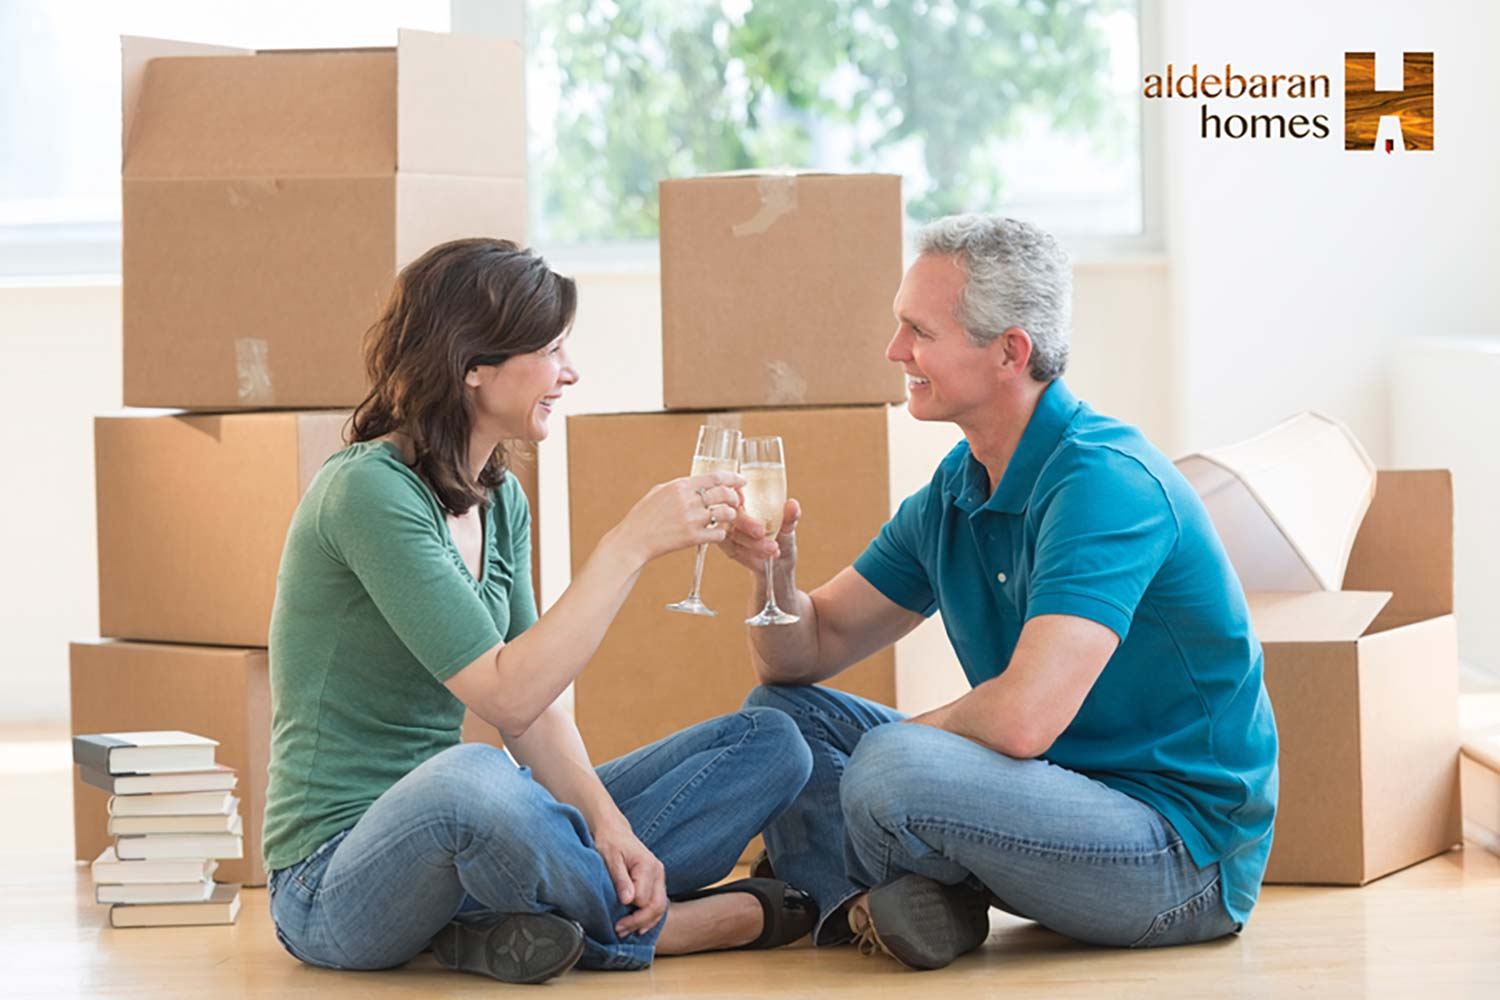 2 People Celebrating Unpacking After Moving Into An Aldebaran Home